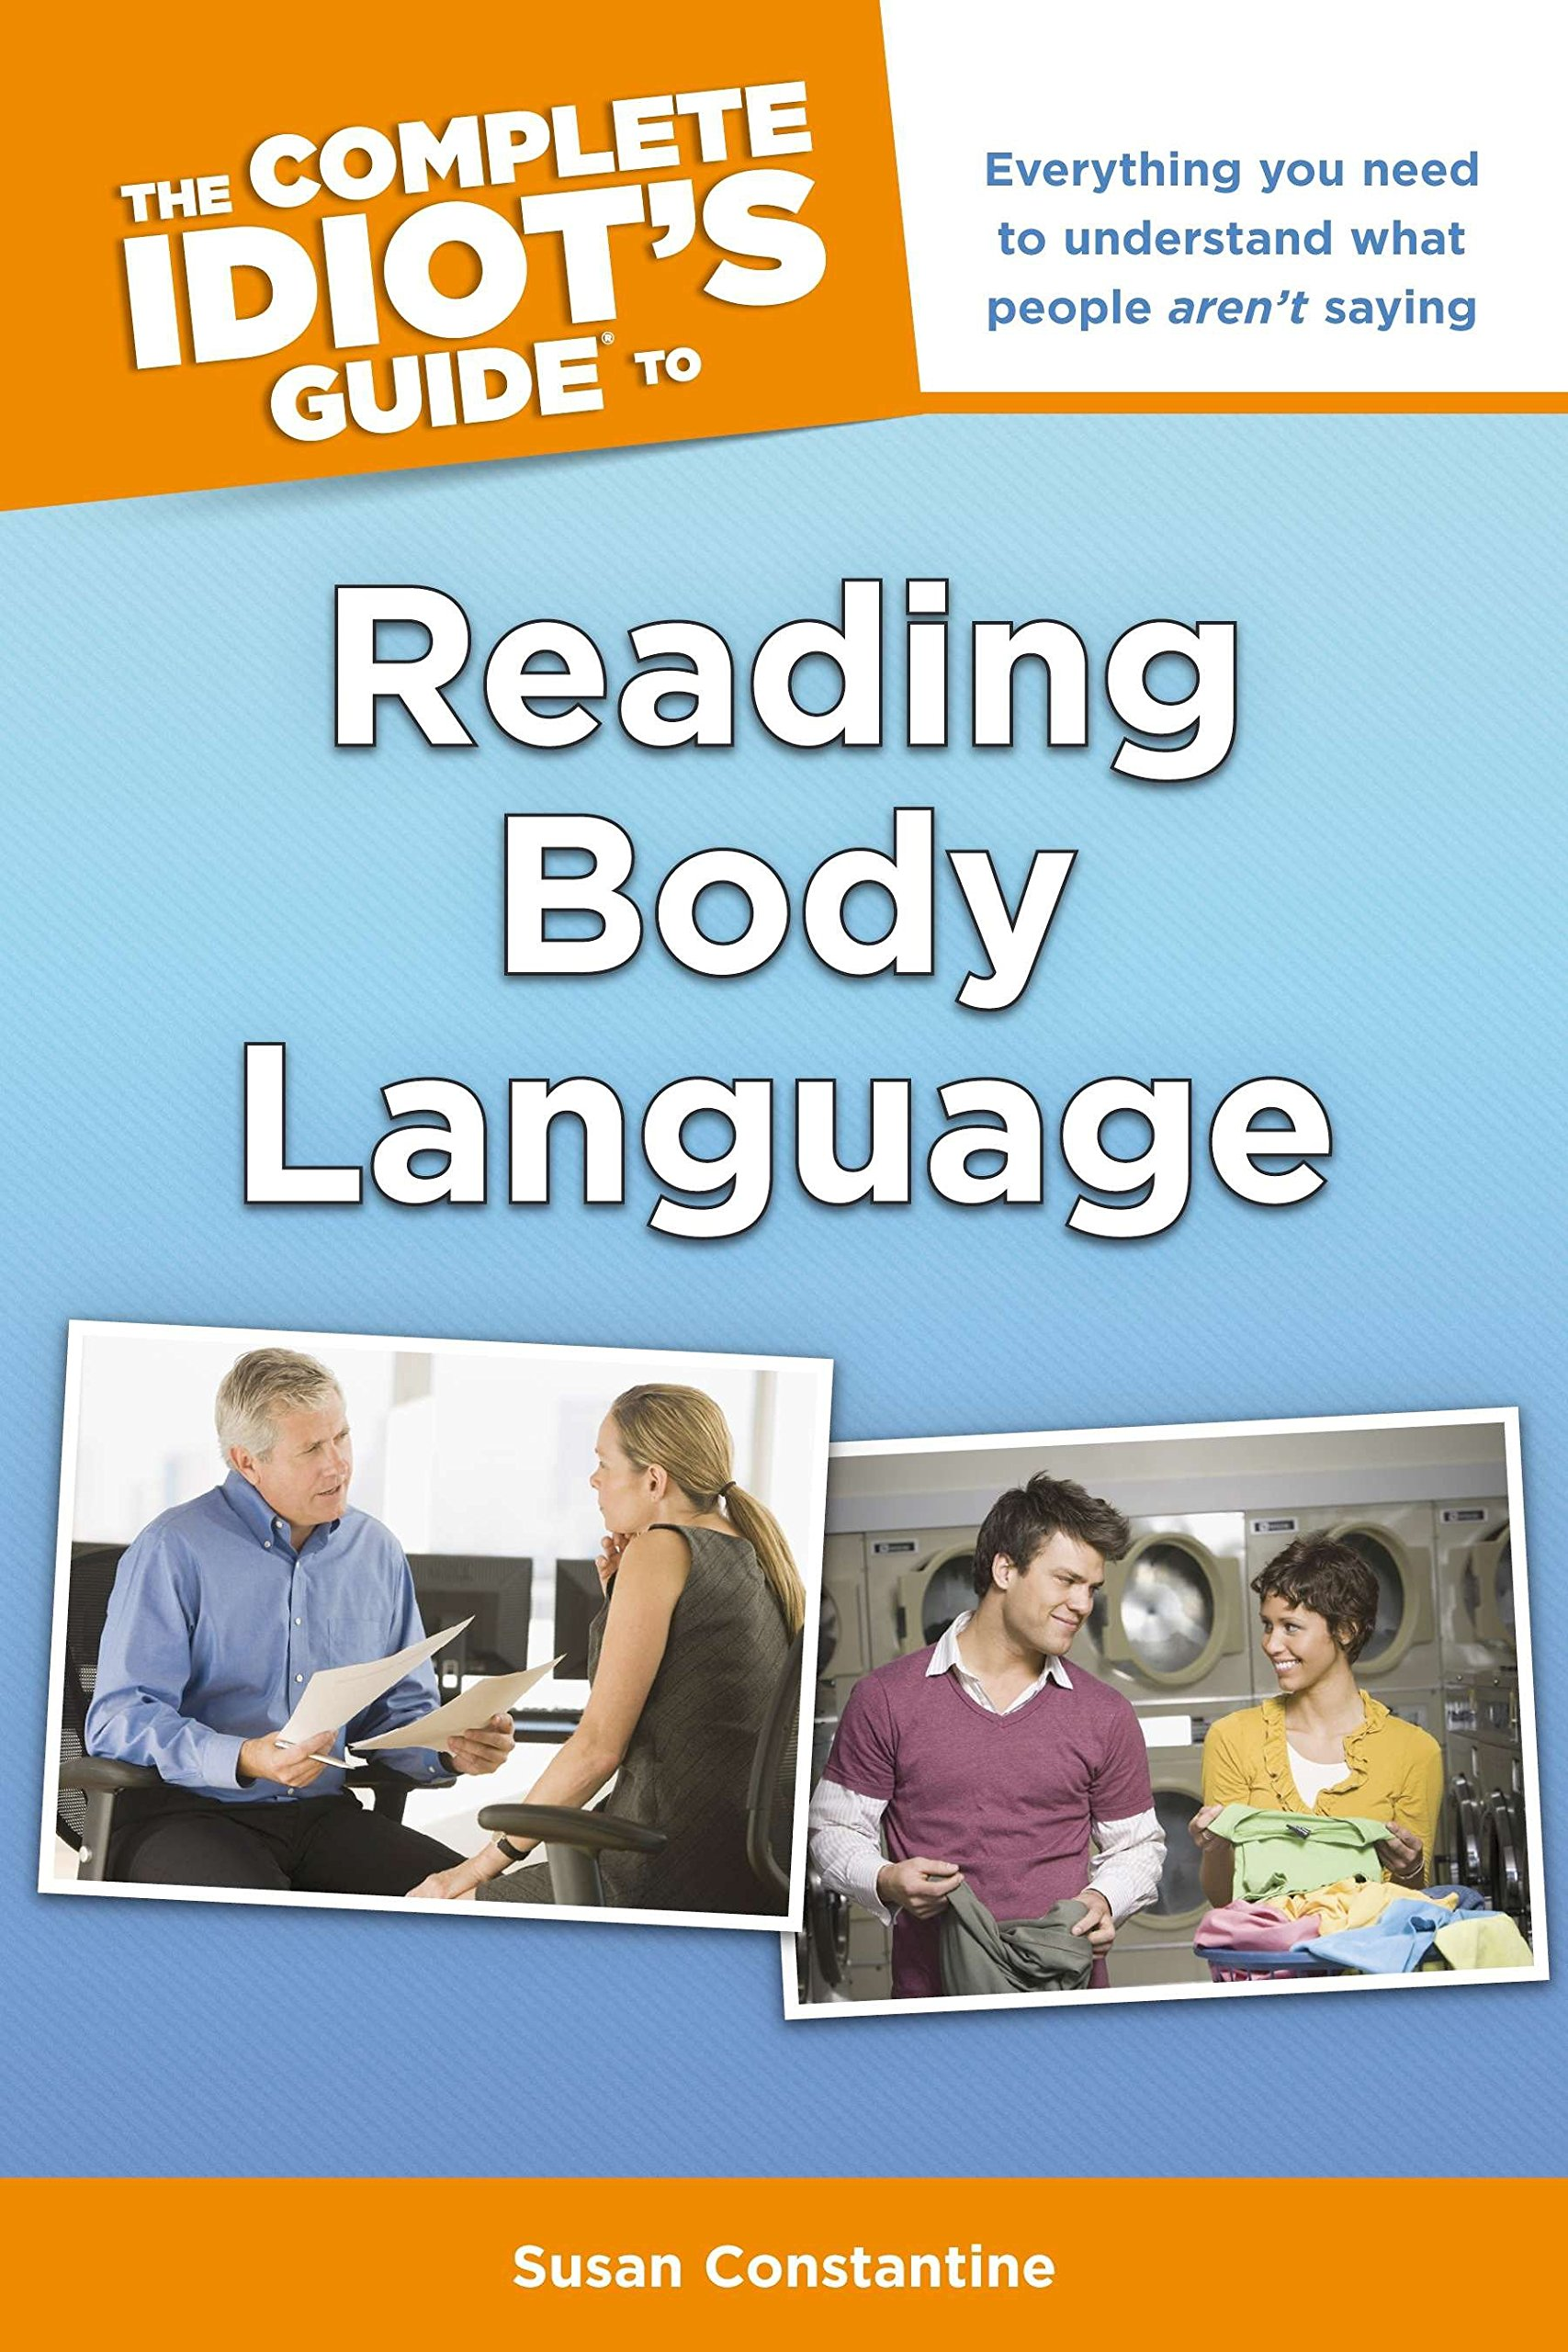 The Complete Idiot's Guide to Reading Body Language: Everything You Need to Understand What People Aren t Saying by ALPHA